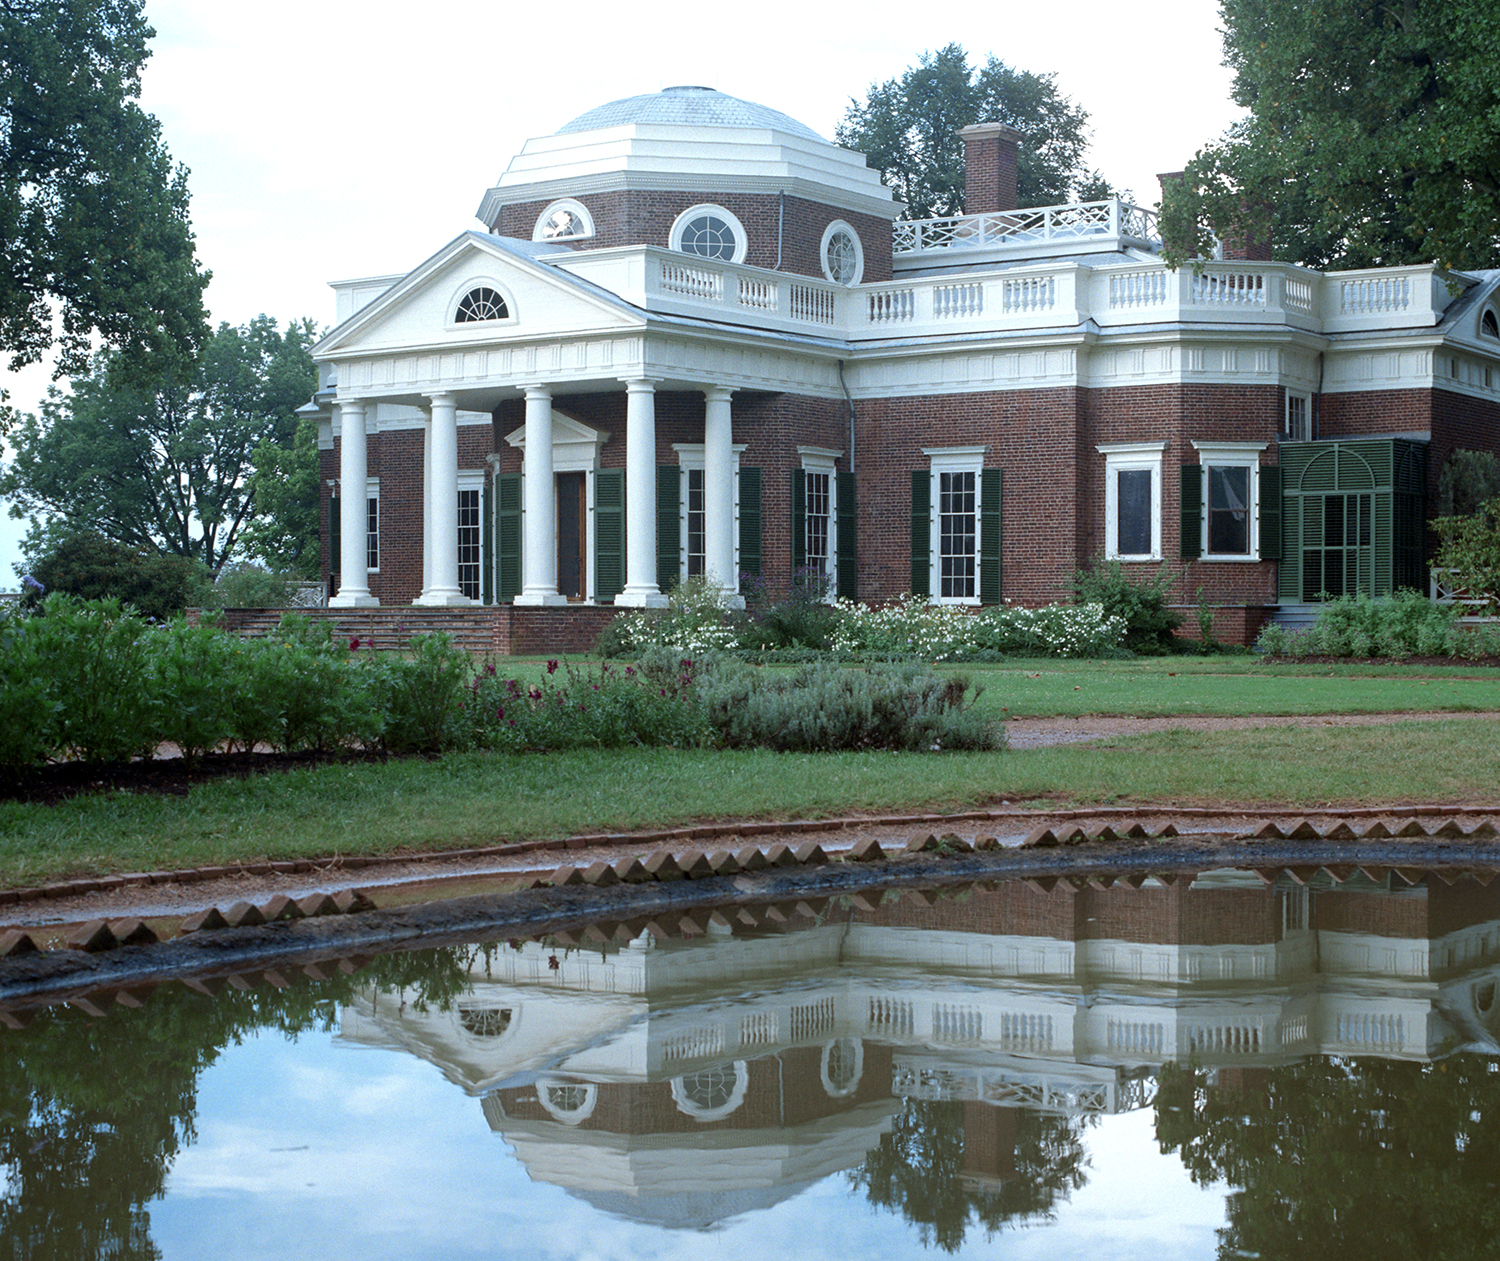 The Holding Pond at Monticello